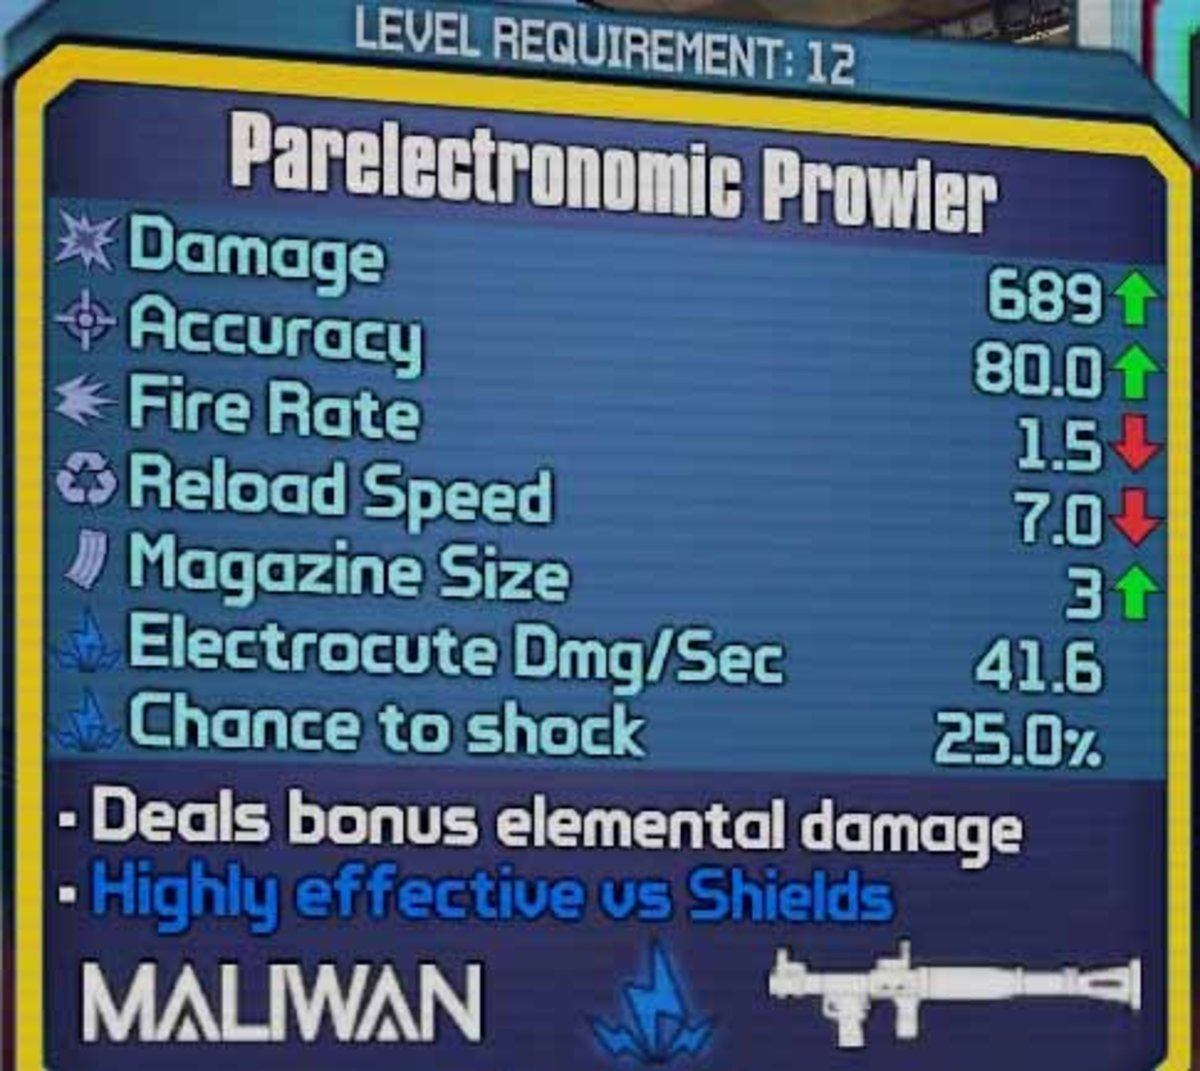 Borderlands 2 Parelectronomic Prowler